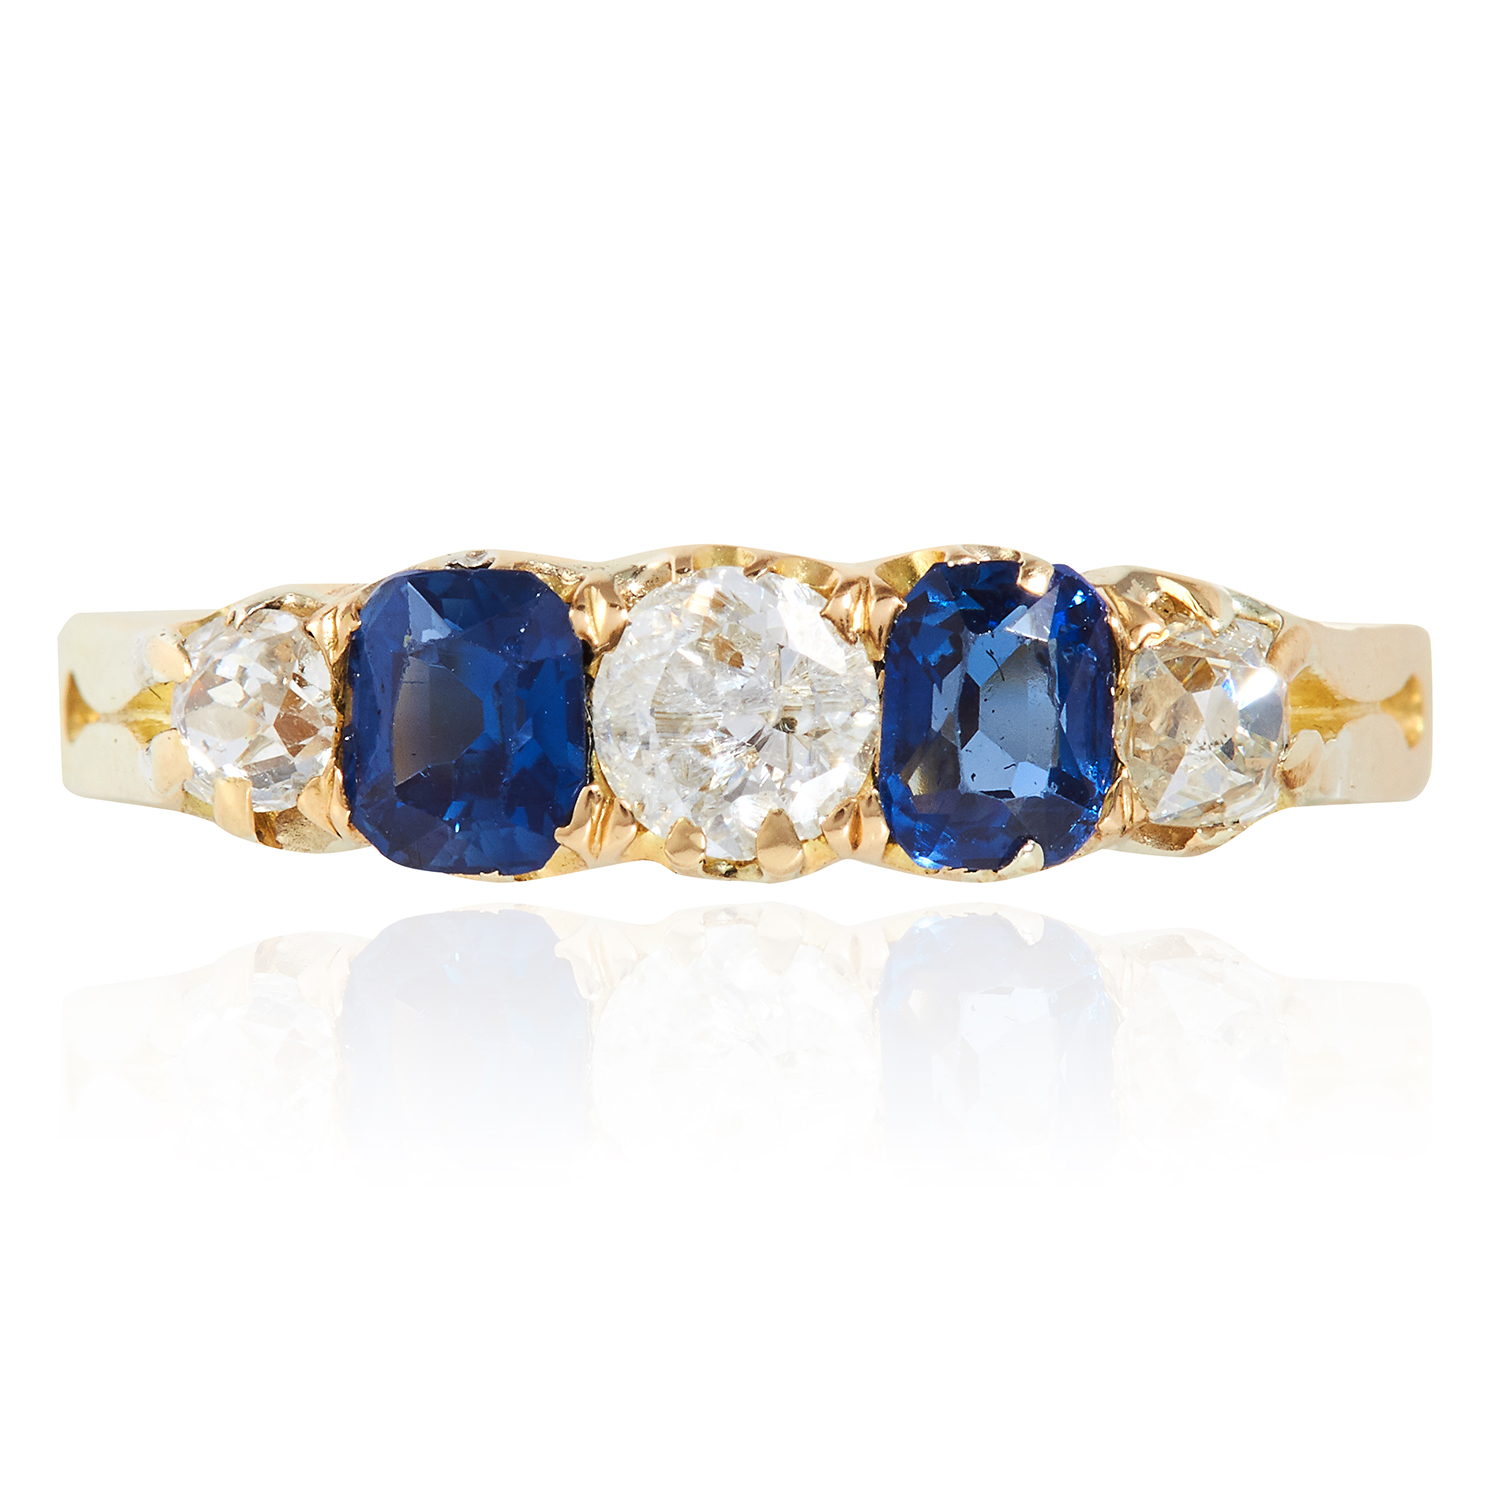 Los 22 - AN ANTIQUE SAPPHIRE AND DIAMOND RING in 18ct yellow gold, set with alternating oval cut sapphires